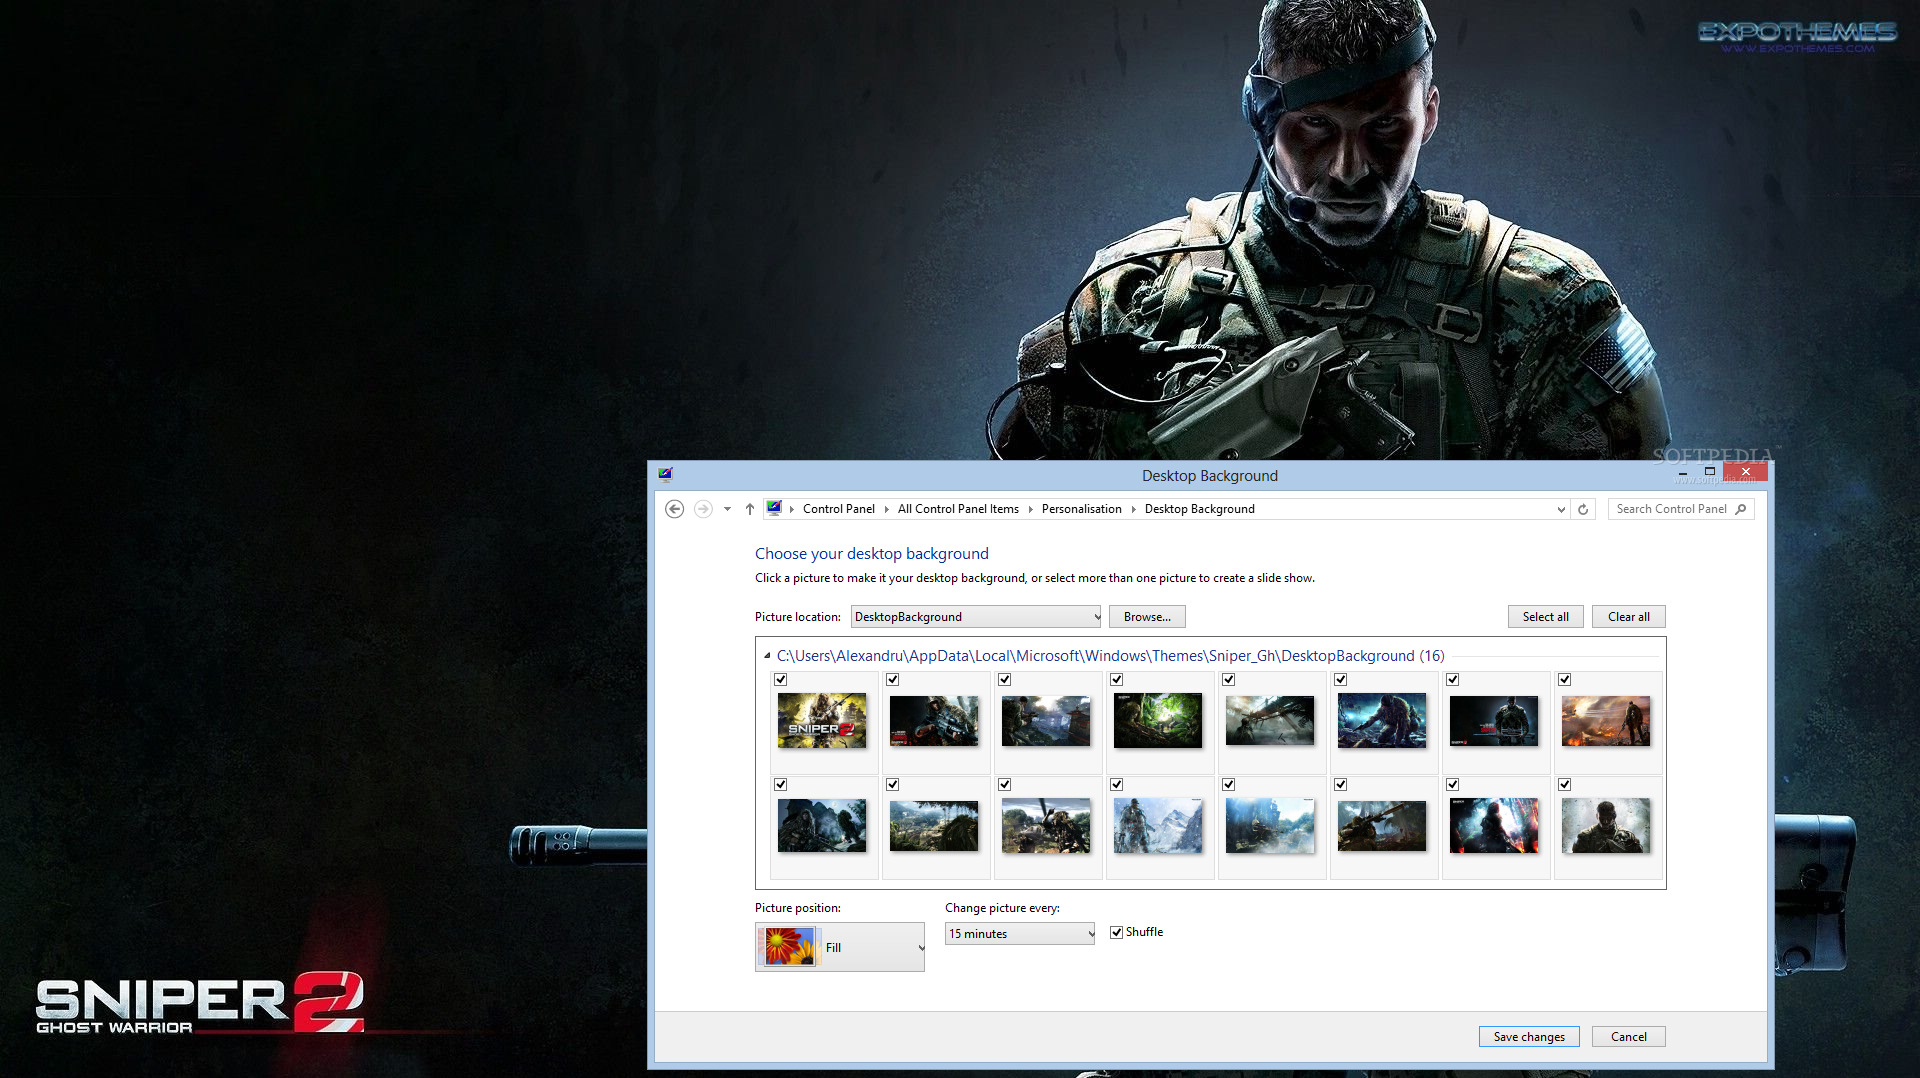 download sniper ghost warrior 2 theme 1.0